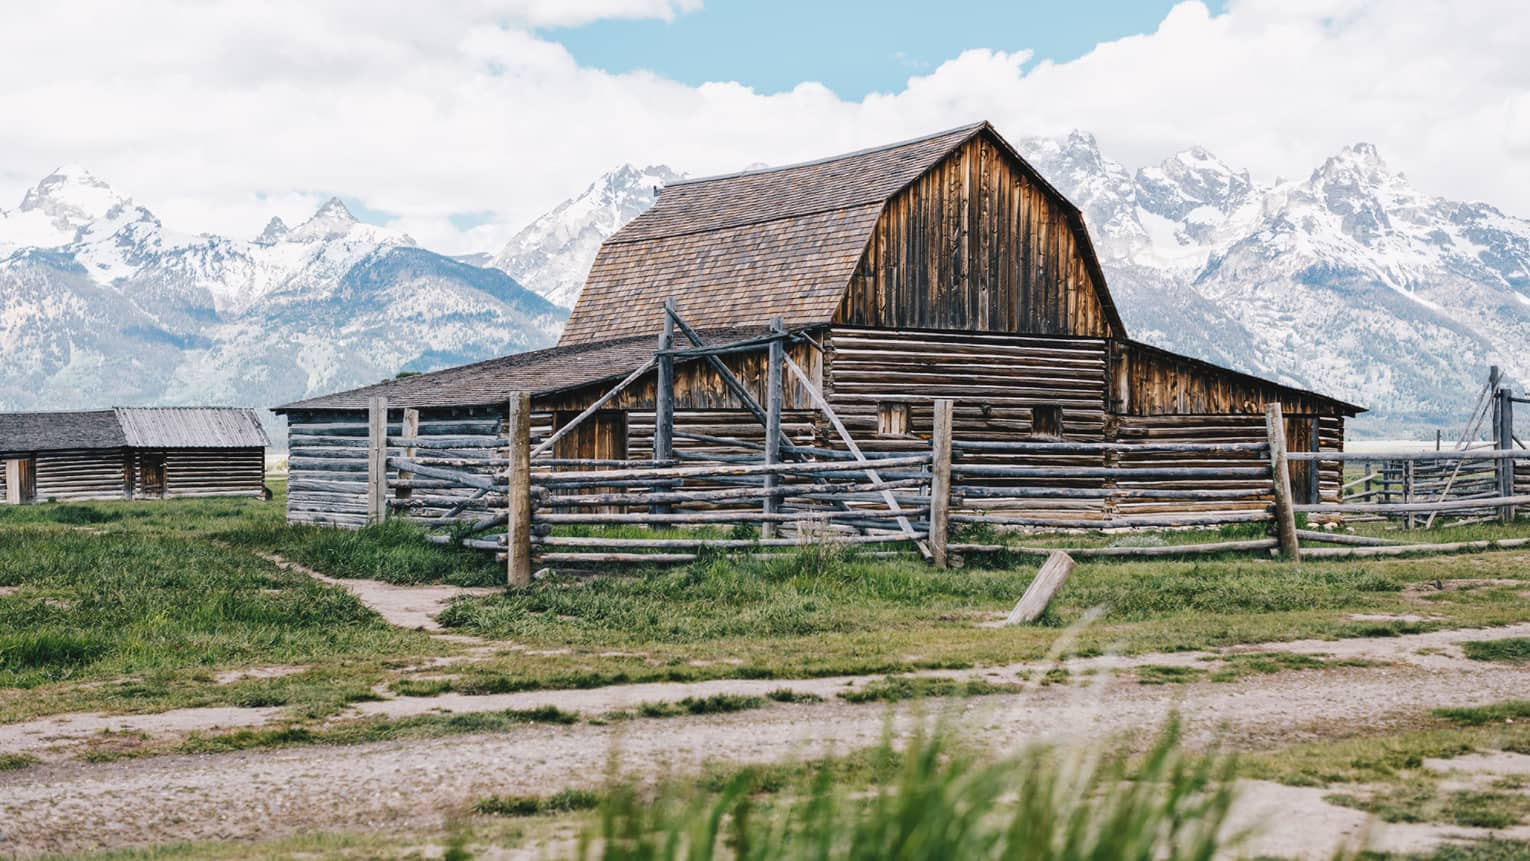 An old barn sits on a grassy patch of land, the snow-capped mountains looming behind it